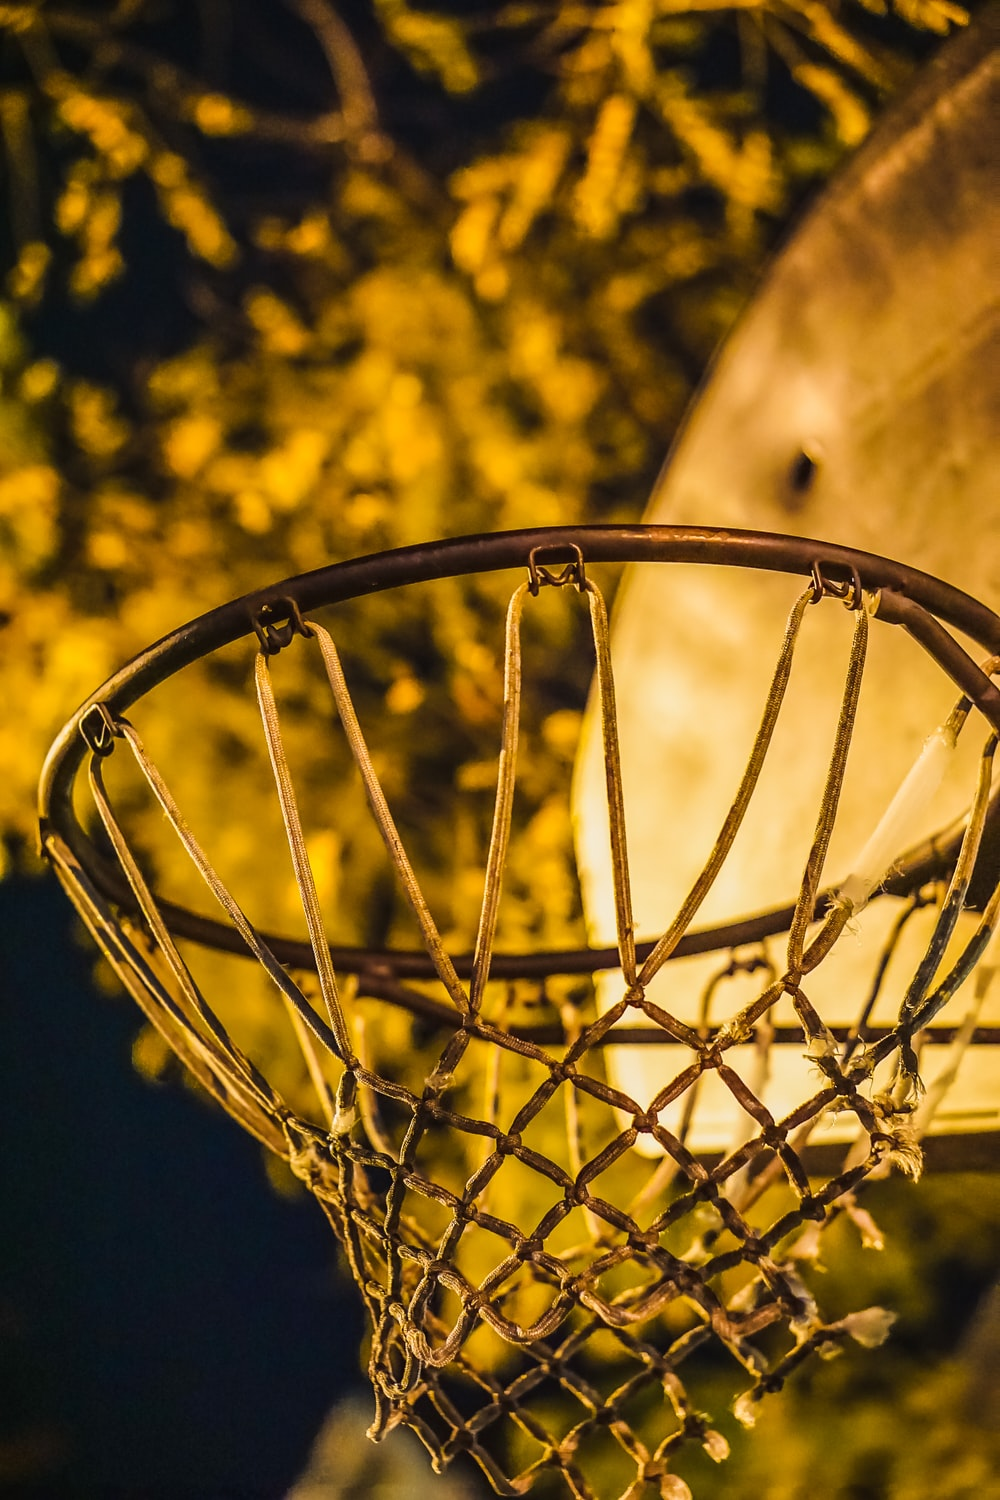 close-up photography of basketball ring